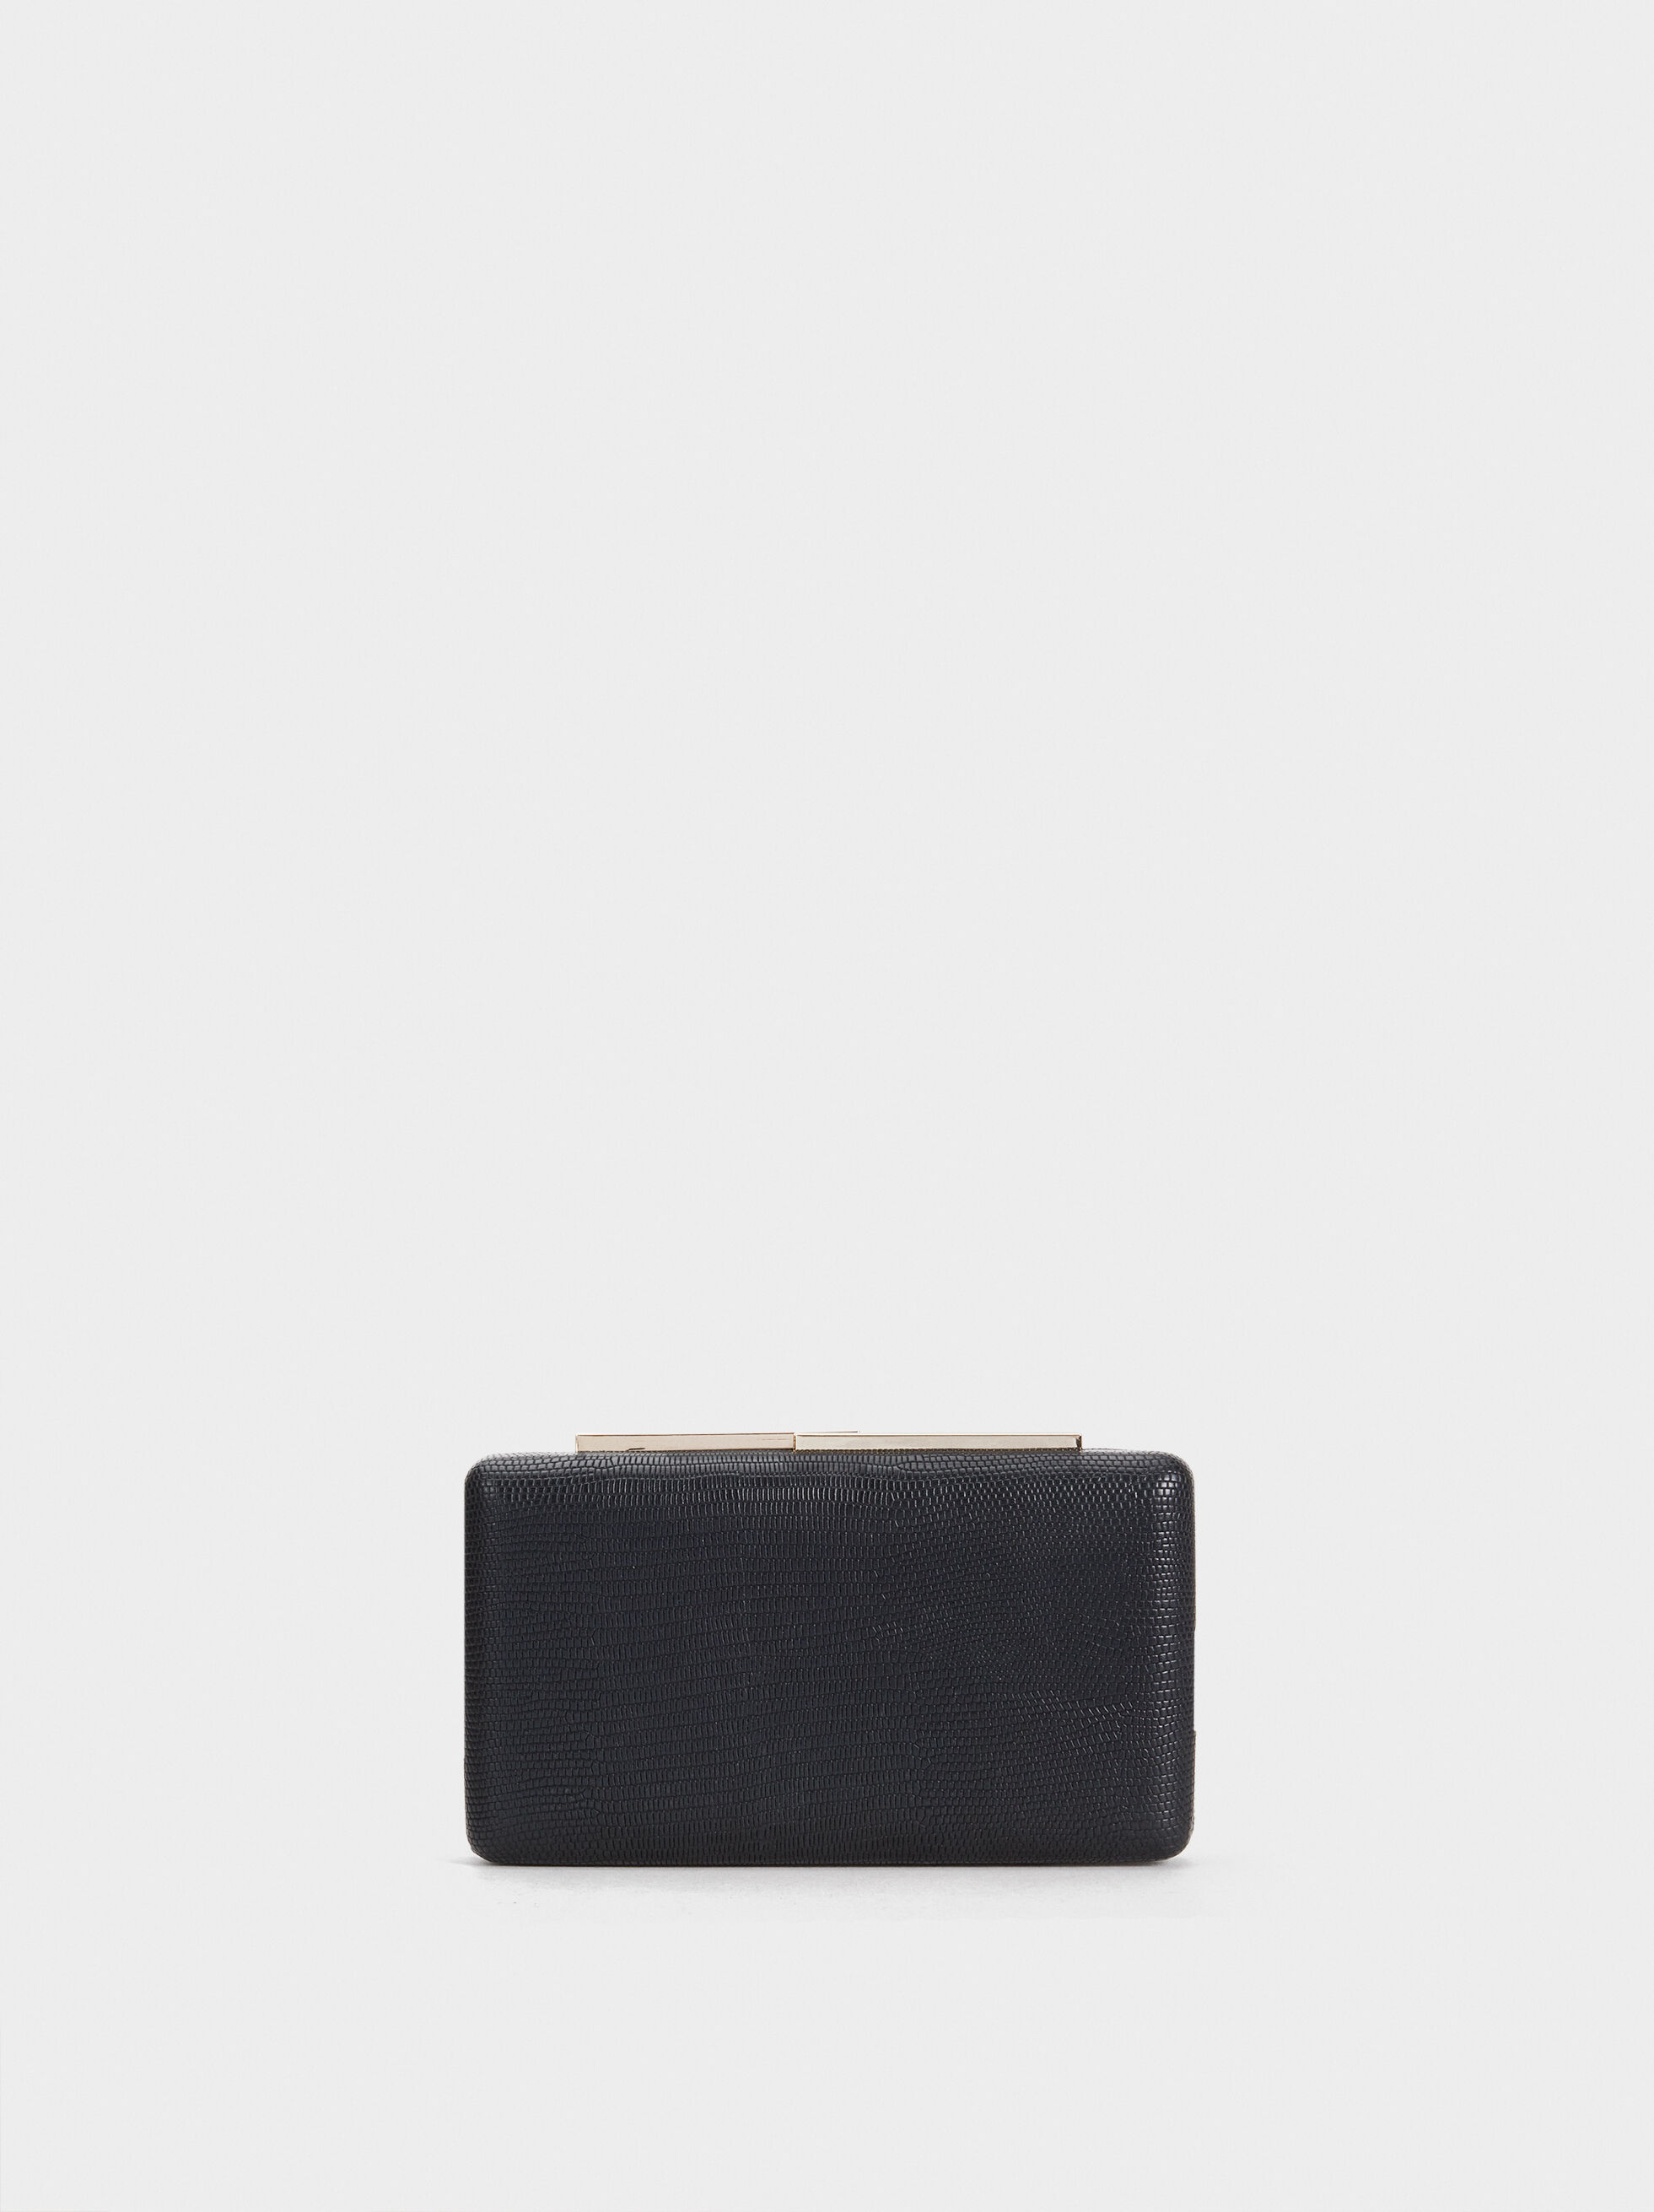 Animal Embossed Clutch, Black, hi-res